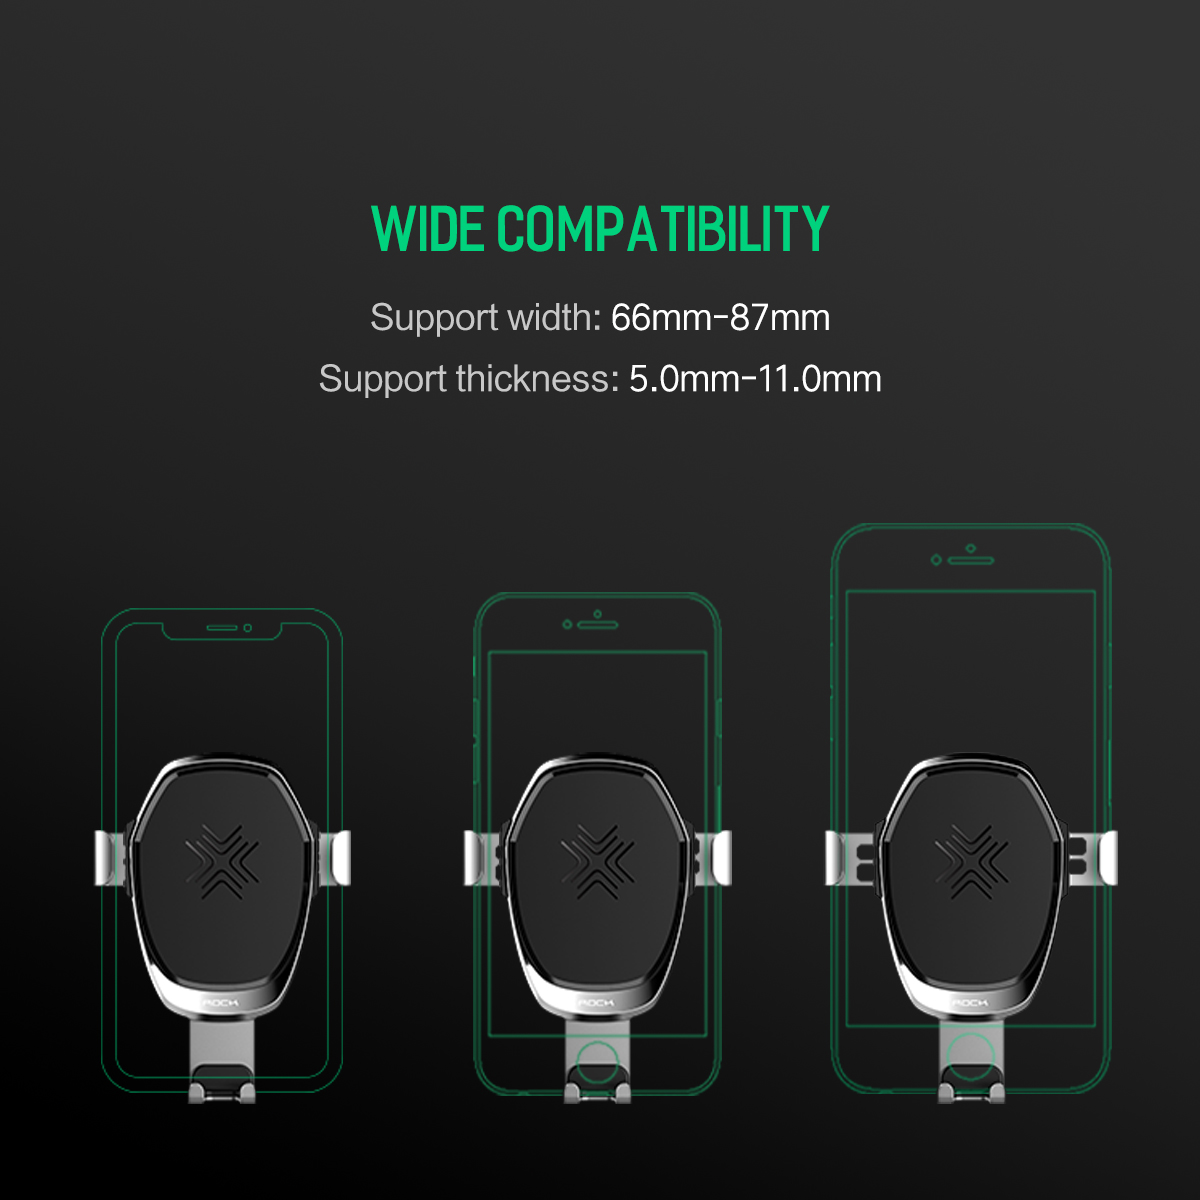 HTB1zmpvKpOWBuNjy0Fiq6xFxVXa2 - 10W QI Wireless Car Charger Gravity Holder , ROCK for iPhone X 8 Plus Samsung Galaxy S8 S7 Note 8 Quick Charge Charging Stand